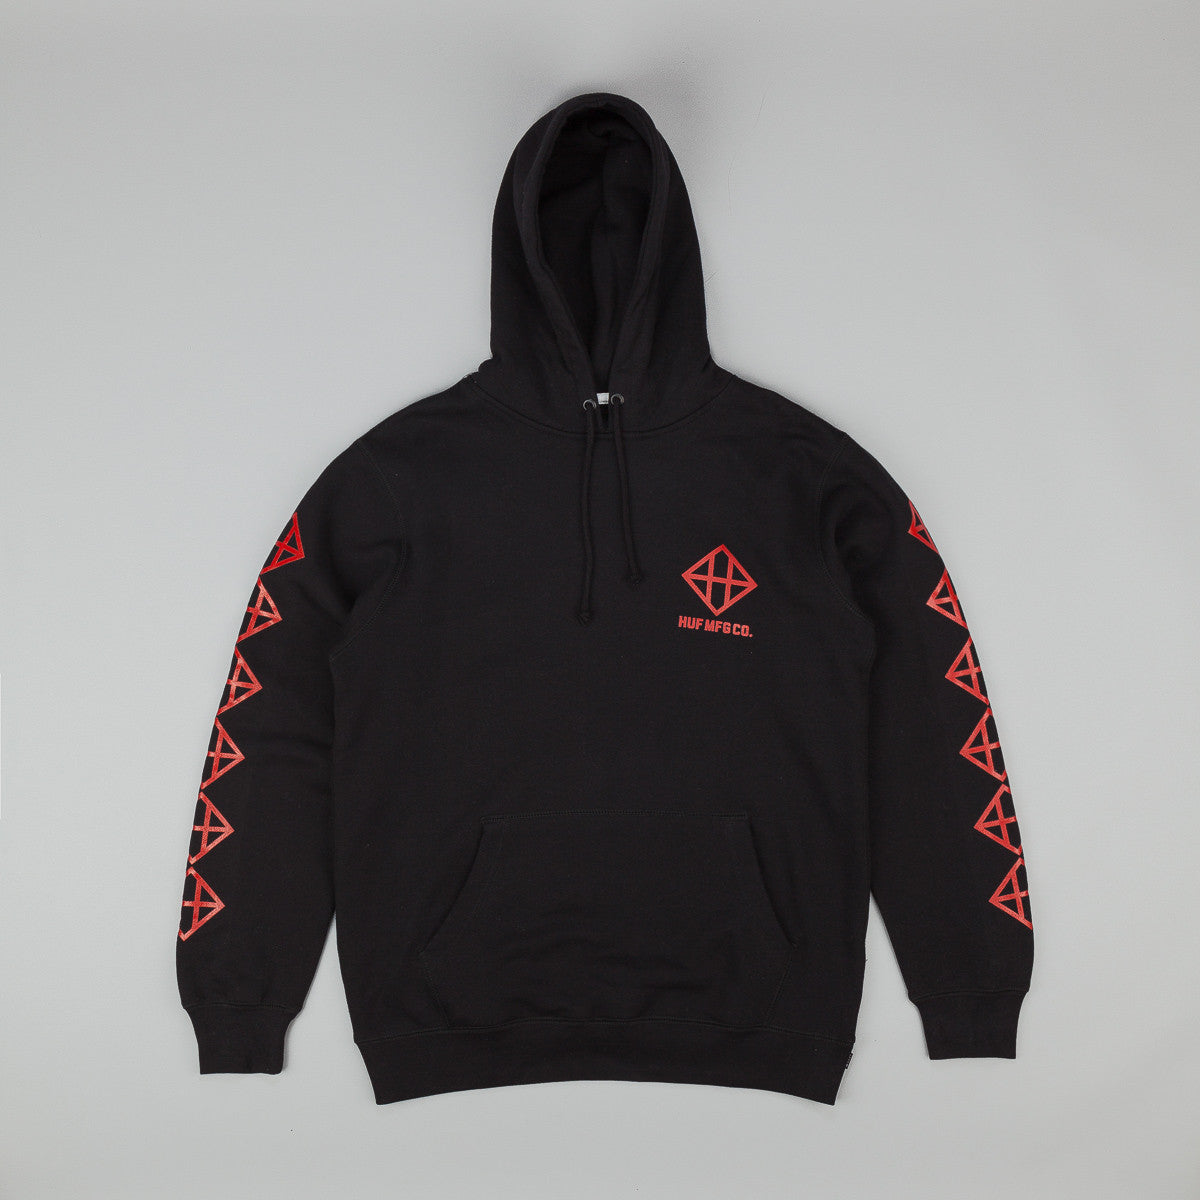 HUF Squared up Pullover Hooded Sweatshirt